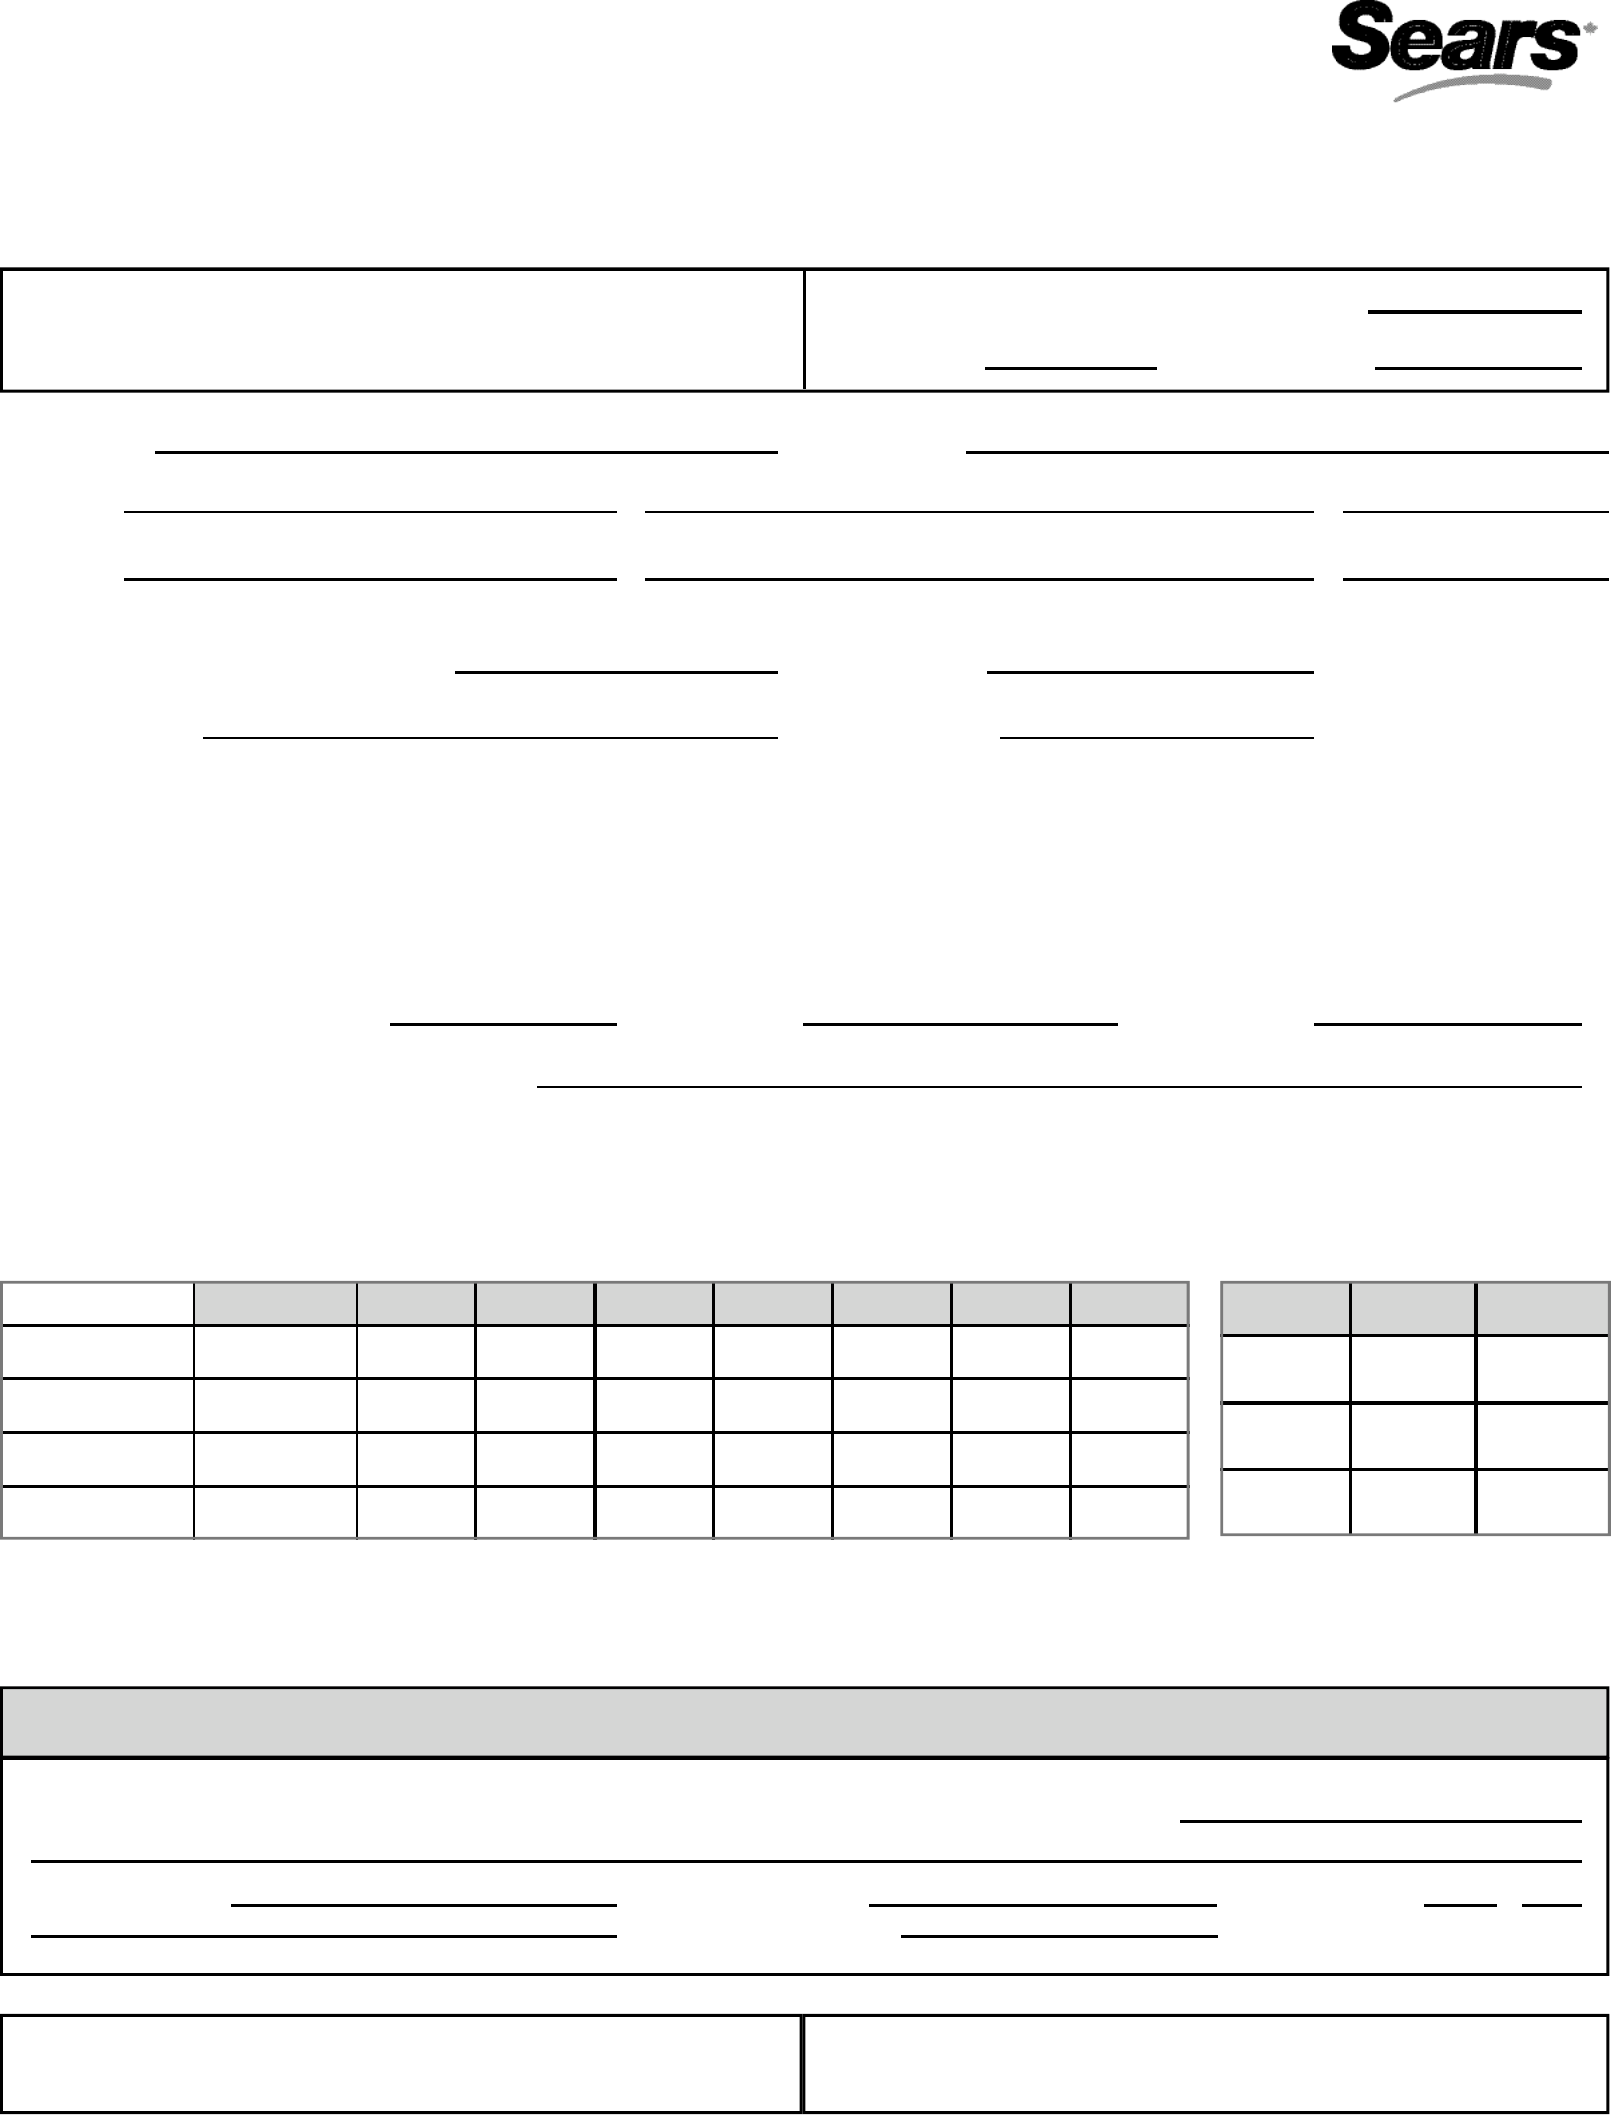 bg1 Job Application Form For Argos Download on part time, blank generic, free generic, sonic printable, big lots,